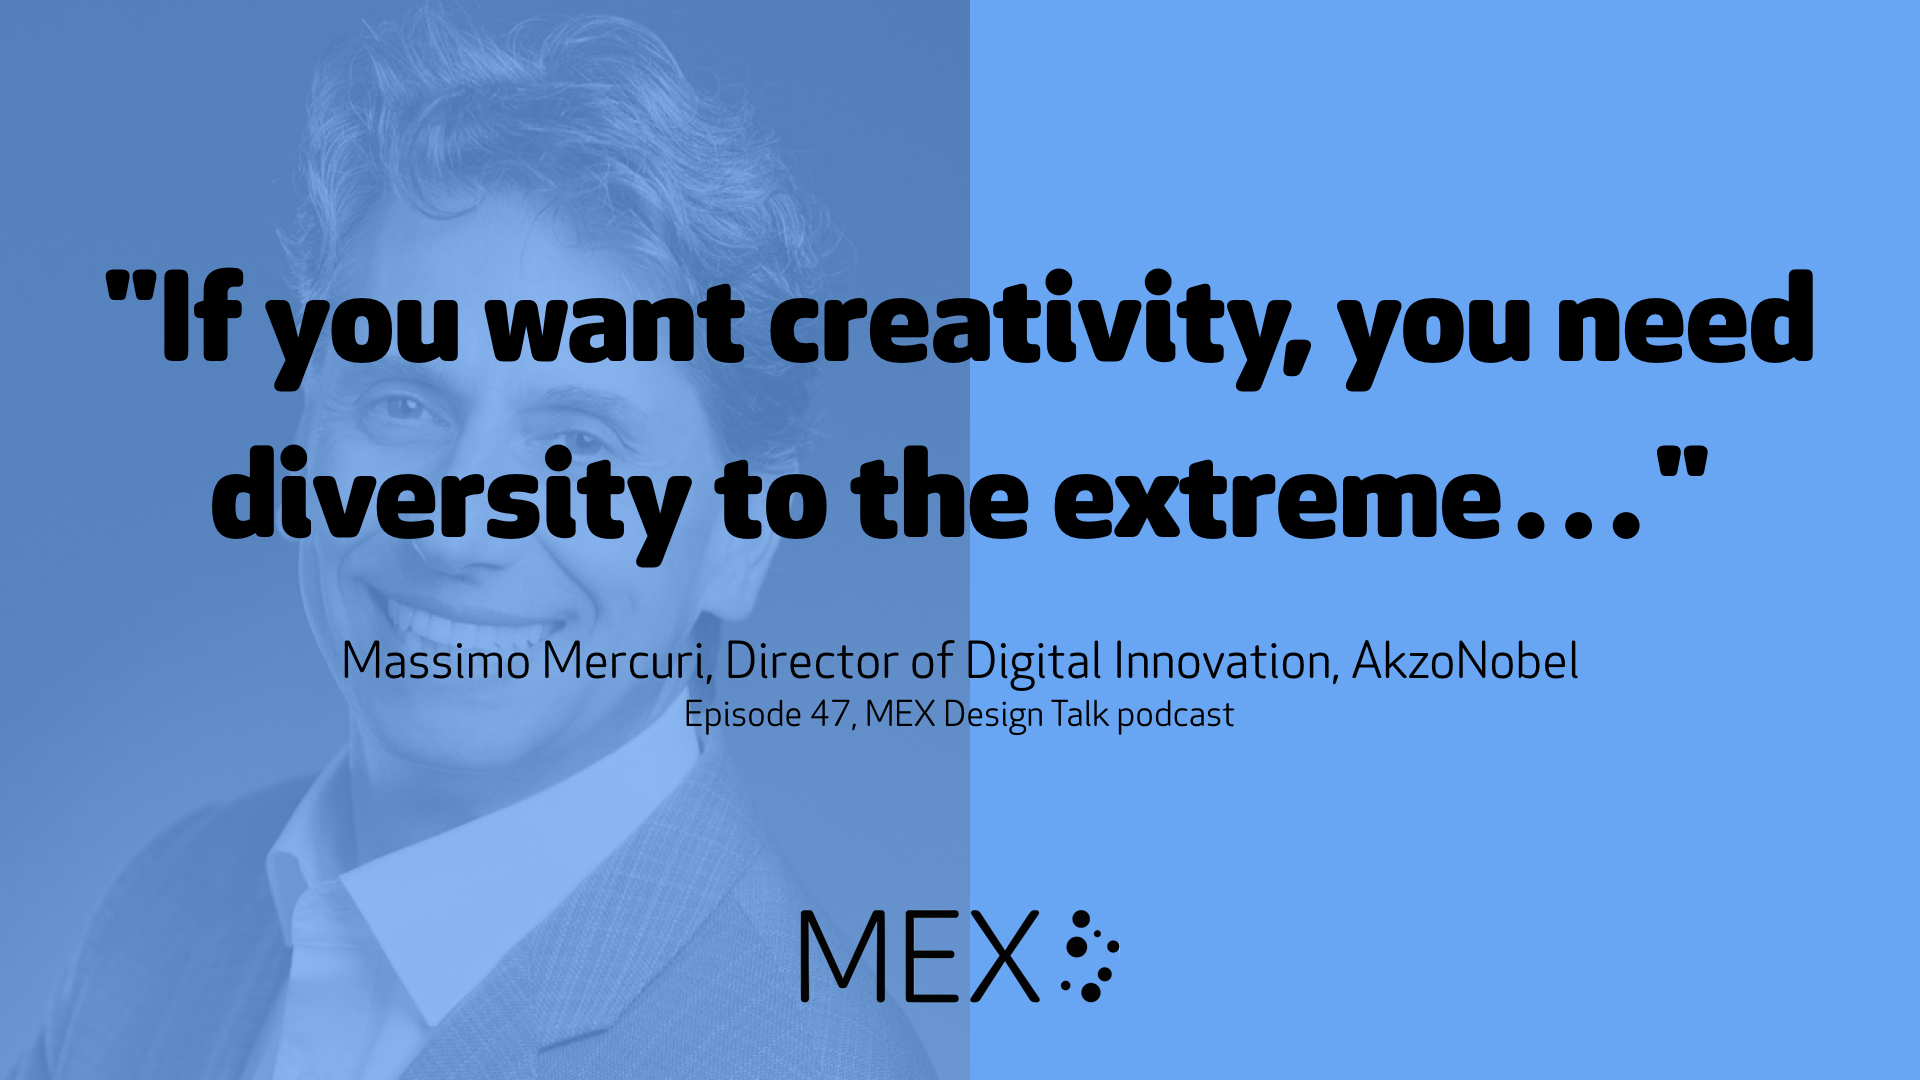 """If you want creativity, you need diversity to the extreme…"" Massimo Mercuri, Director of Digital Innovation, AkzoNobel Episode 47, MEX Design Talk podcast"